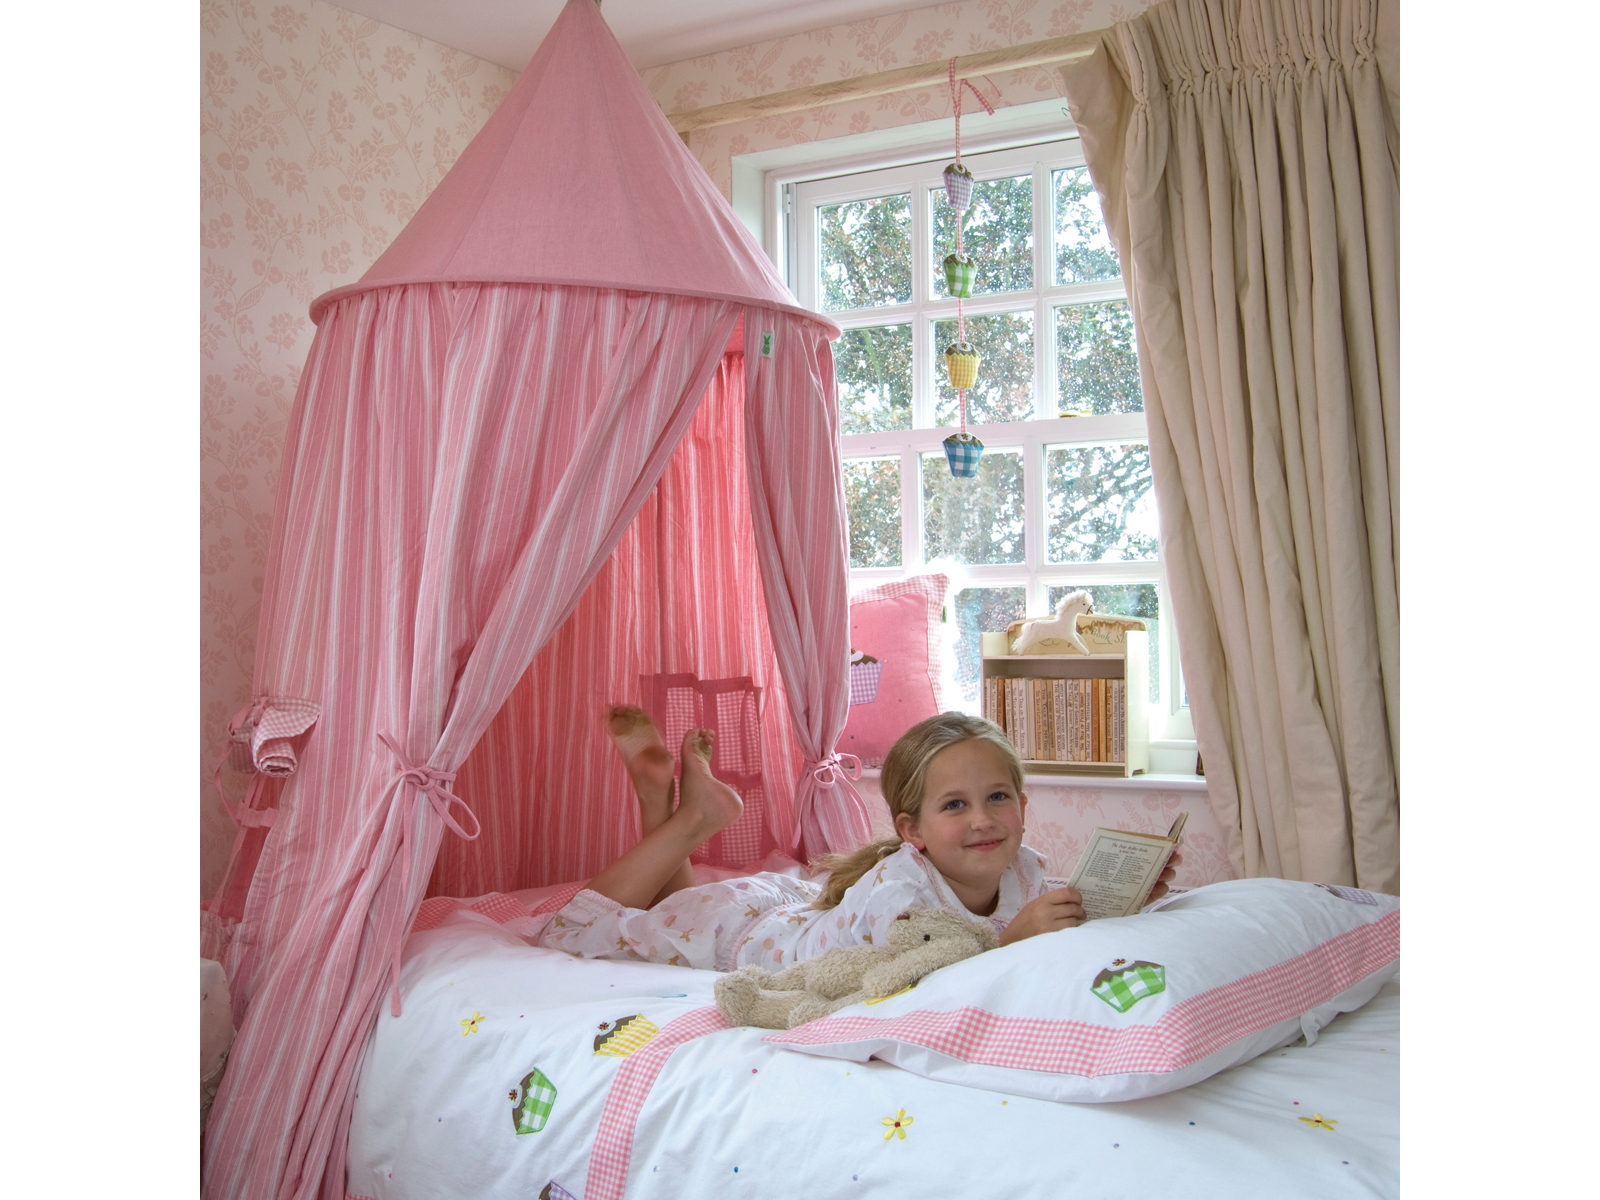 Win Green Handmade Cotton Hanging Tent - Playhouse of Dreams  - 11